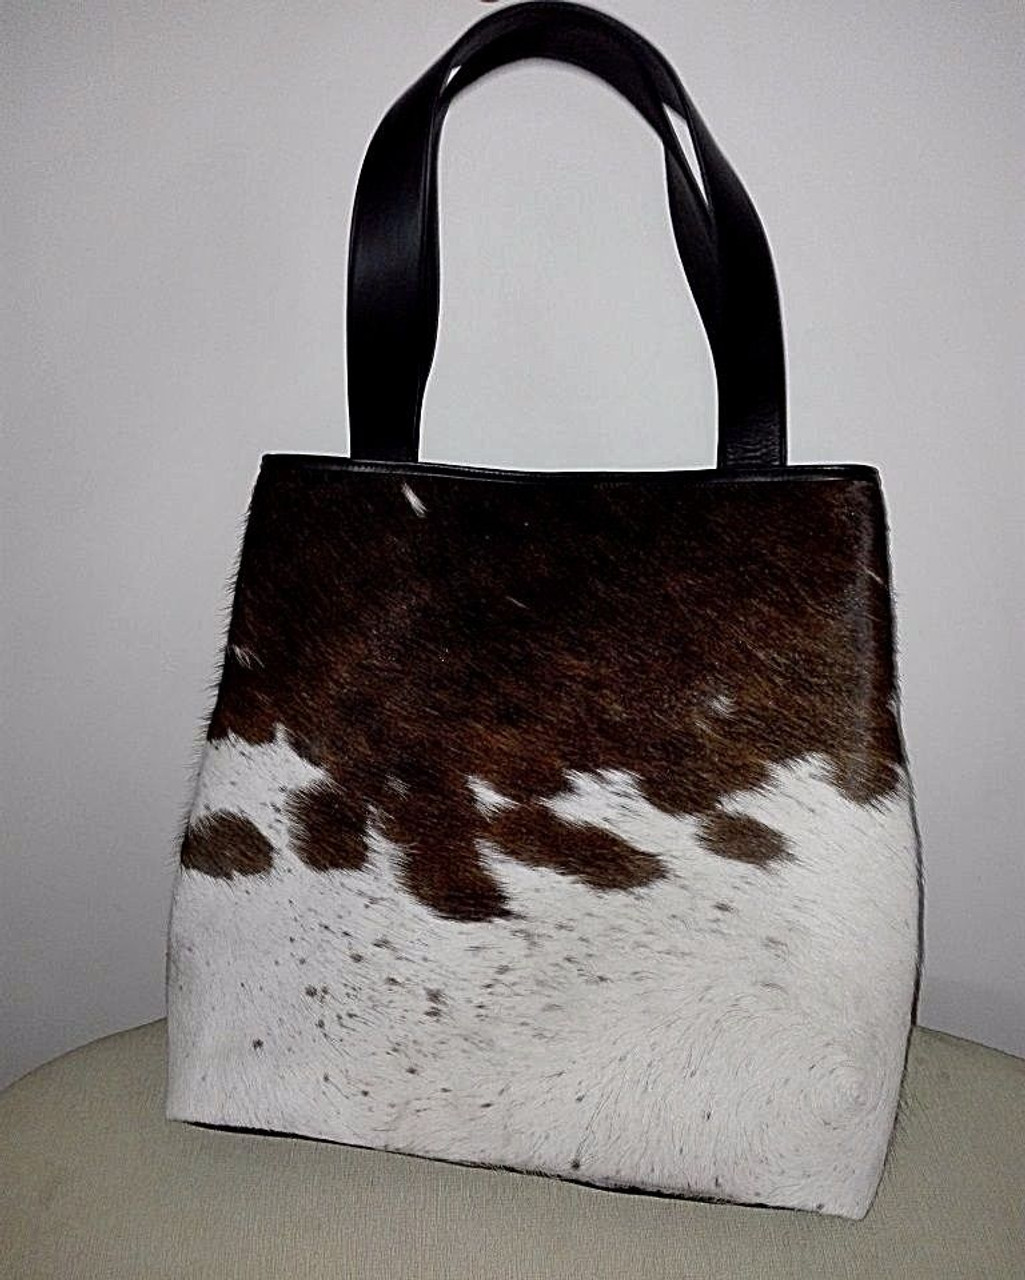 652b595f1bd9 Handmade Cowhide Leather Tote Bags In Assorted Patterns.